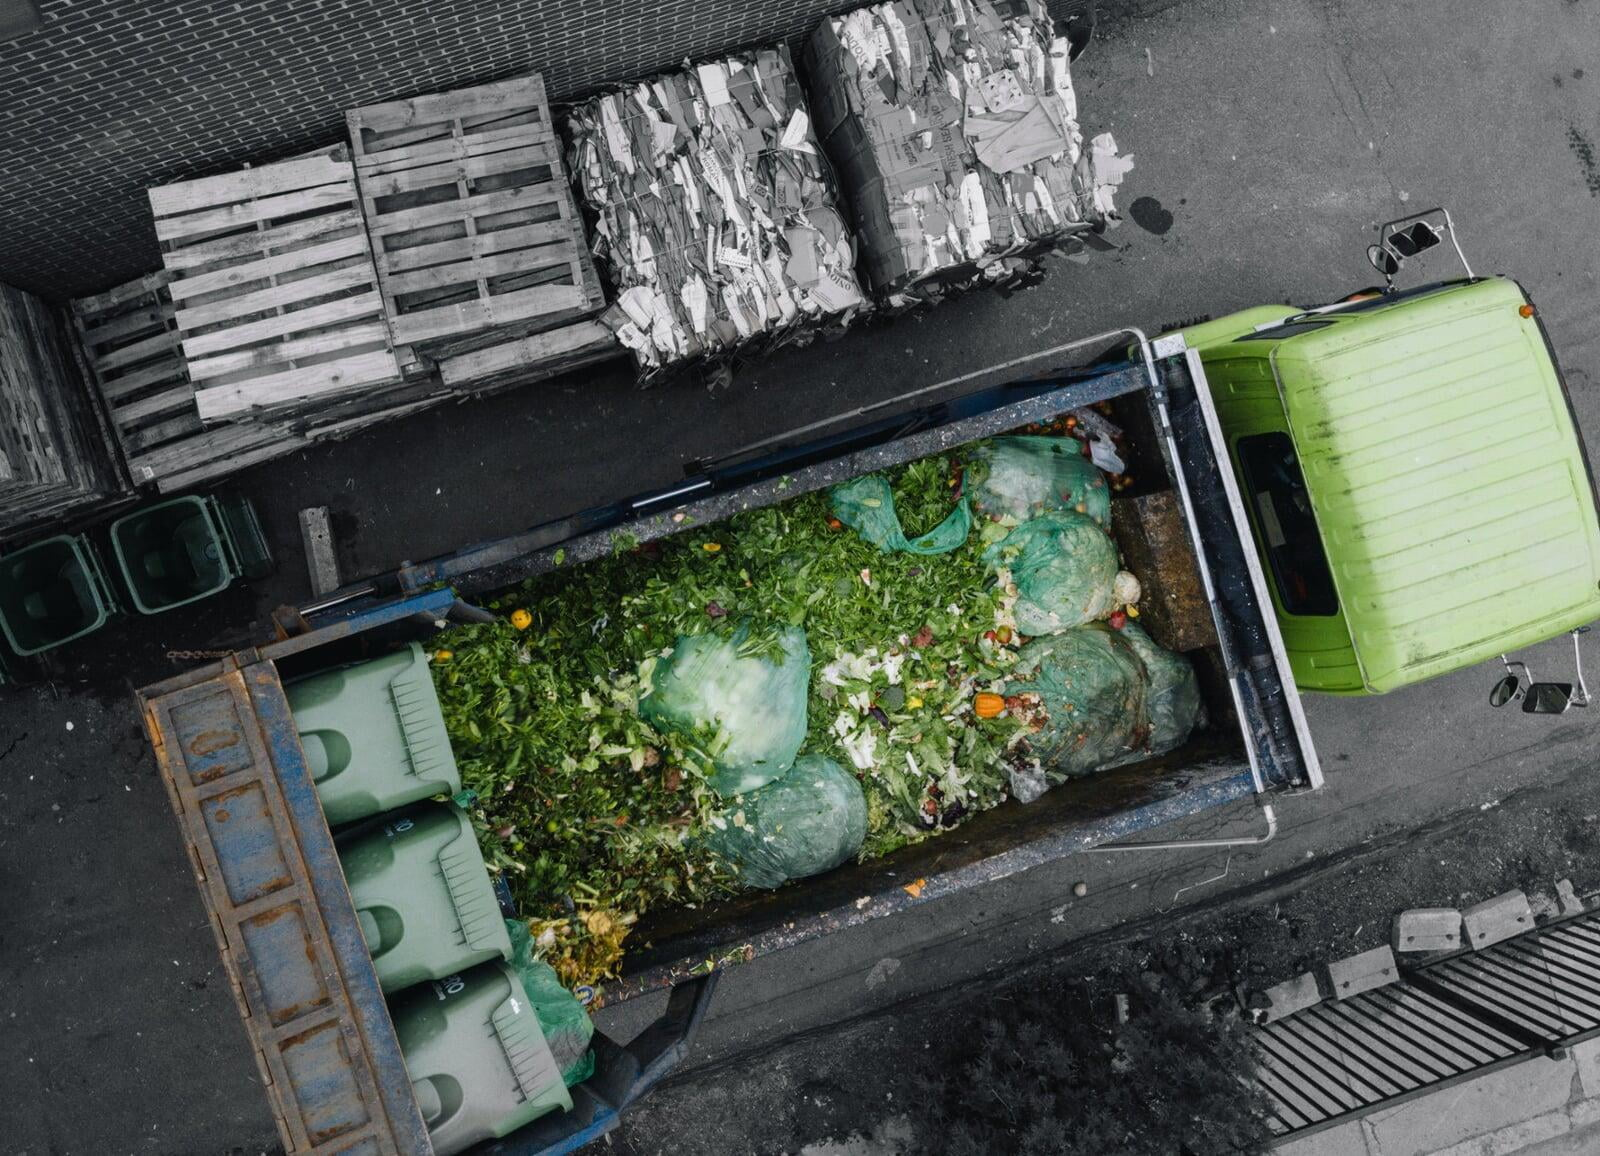 NEW LIFE FOR FOOD WASTE: CERO CO-OP TURNS SCRAPS INTO PRODUCTIVE COMPOST